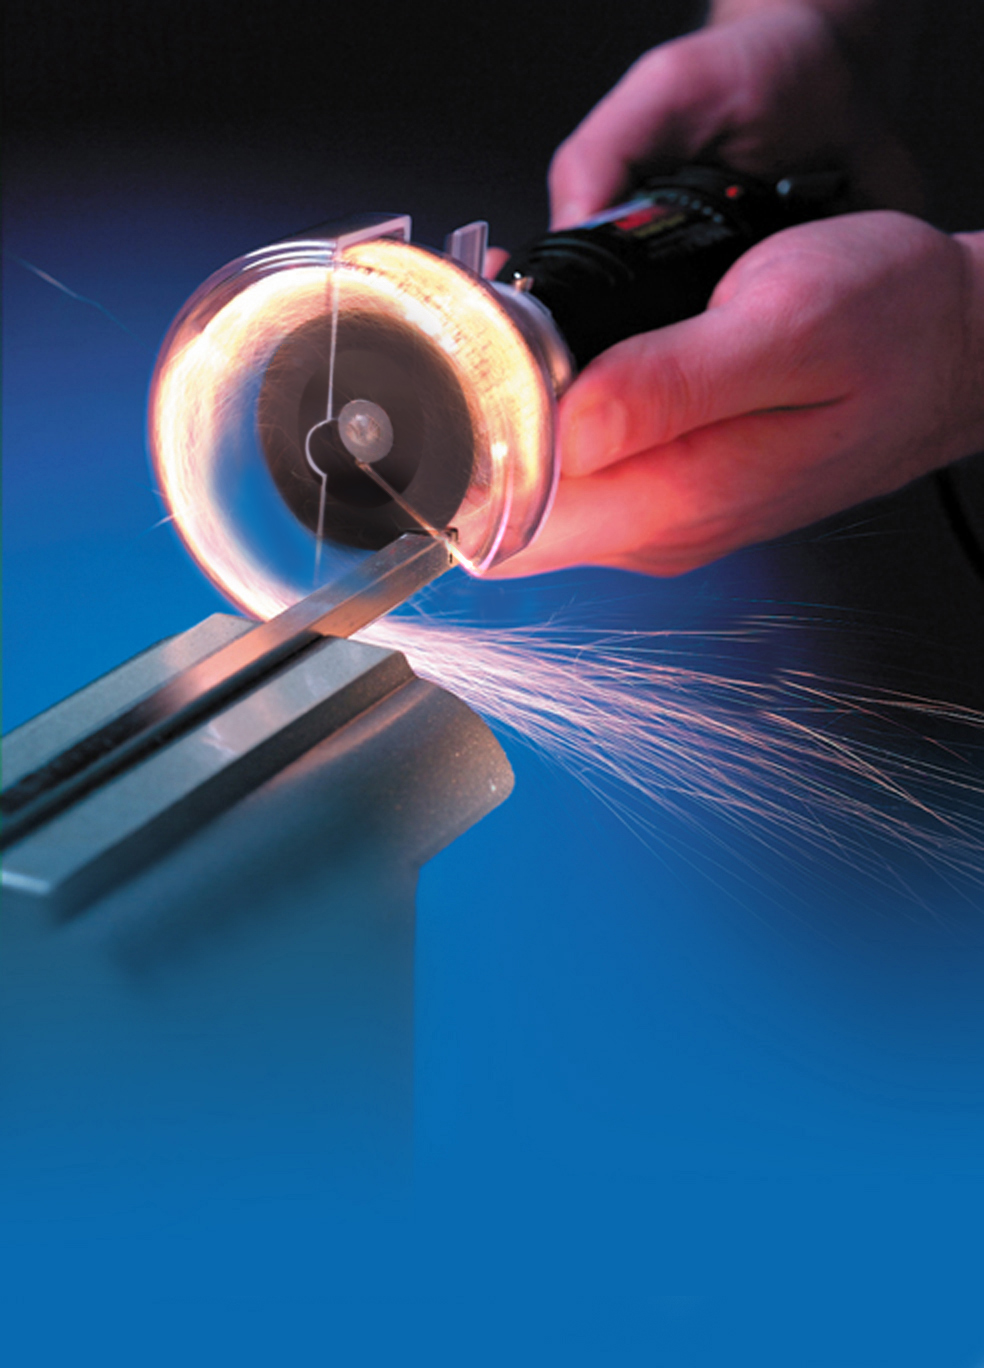 Safety Shields - For Rotary Tools